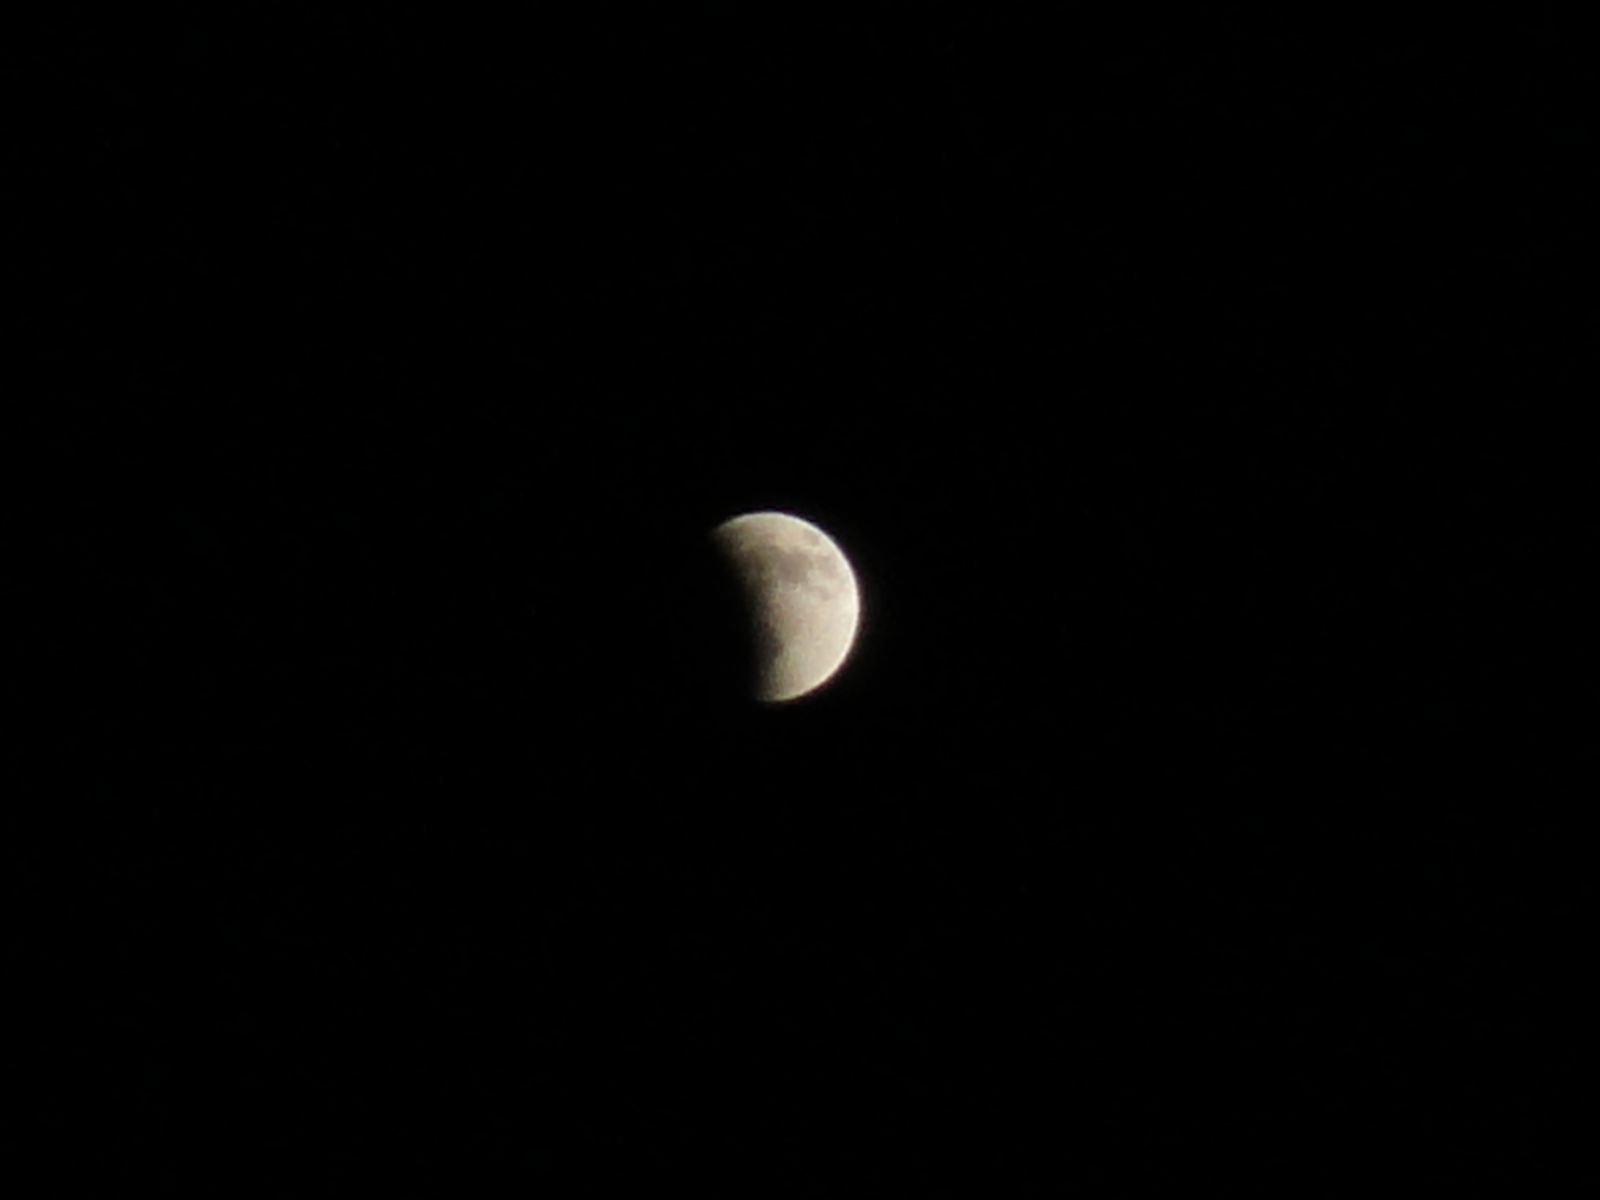 lunar_eclipse_047.jpg